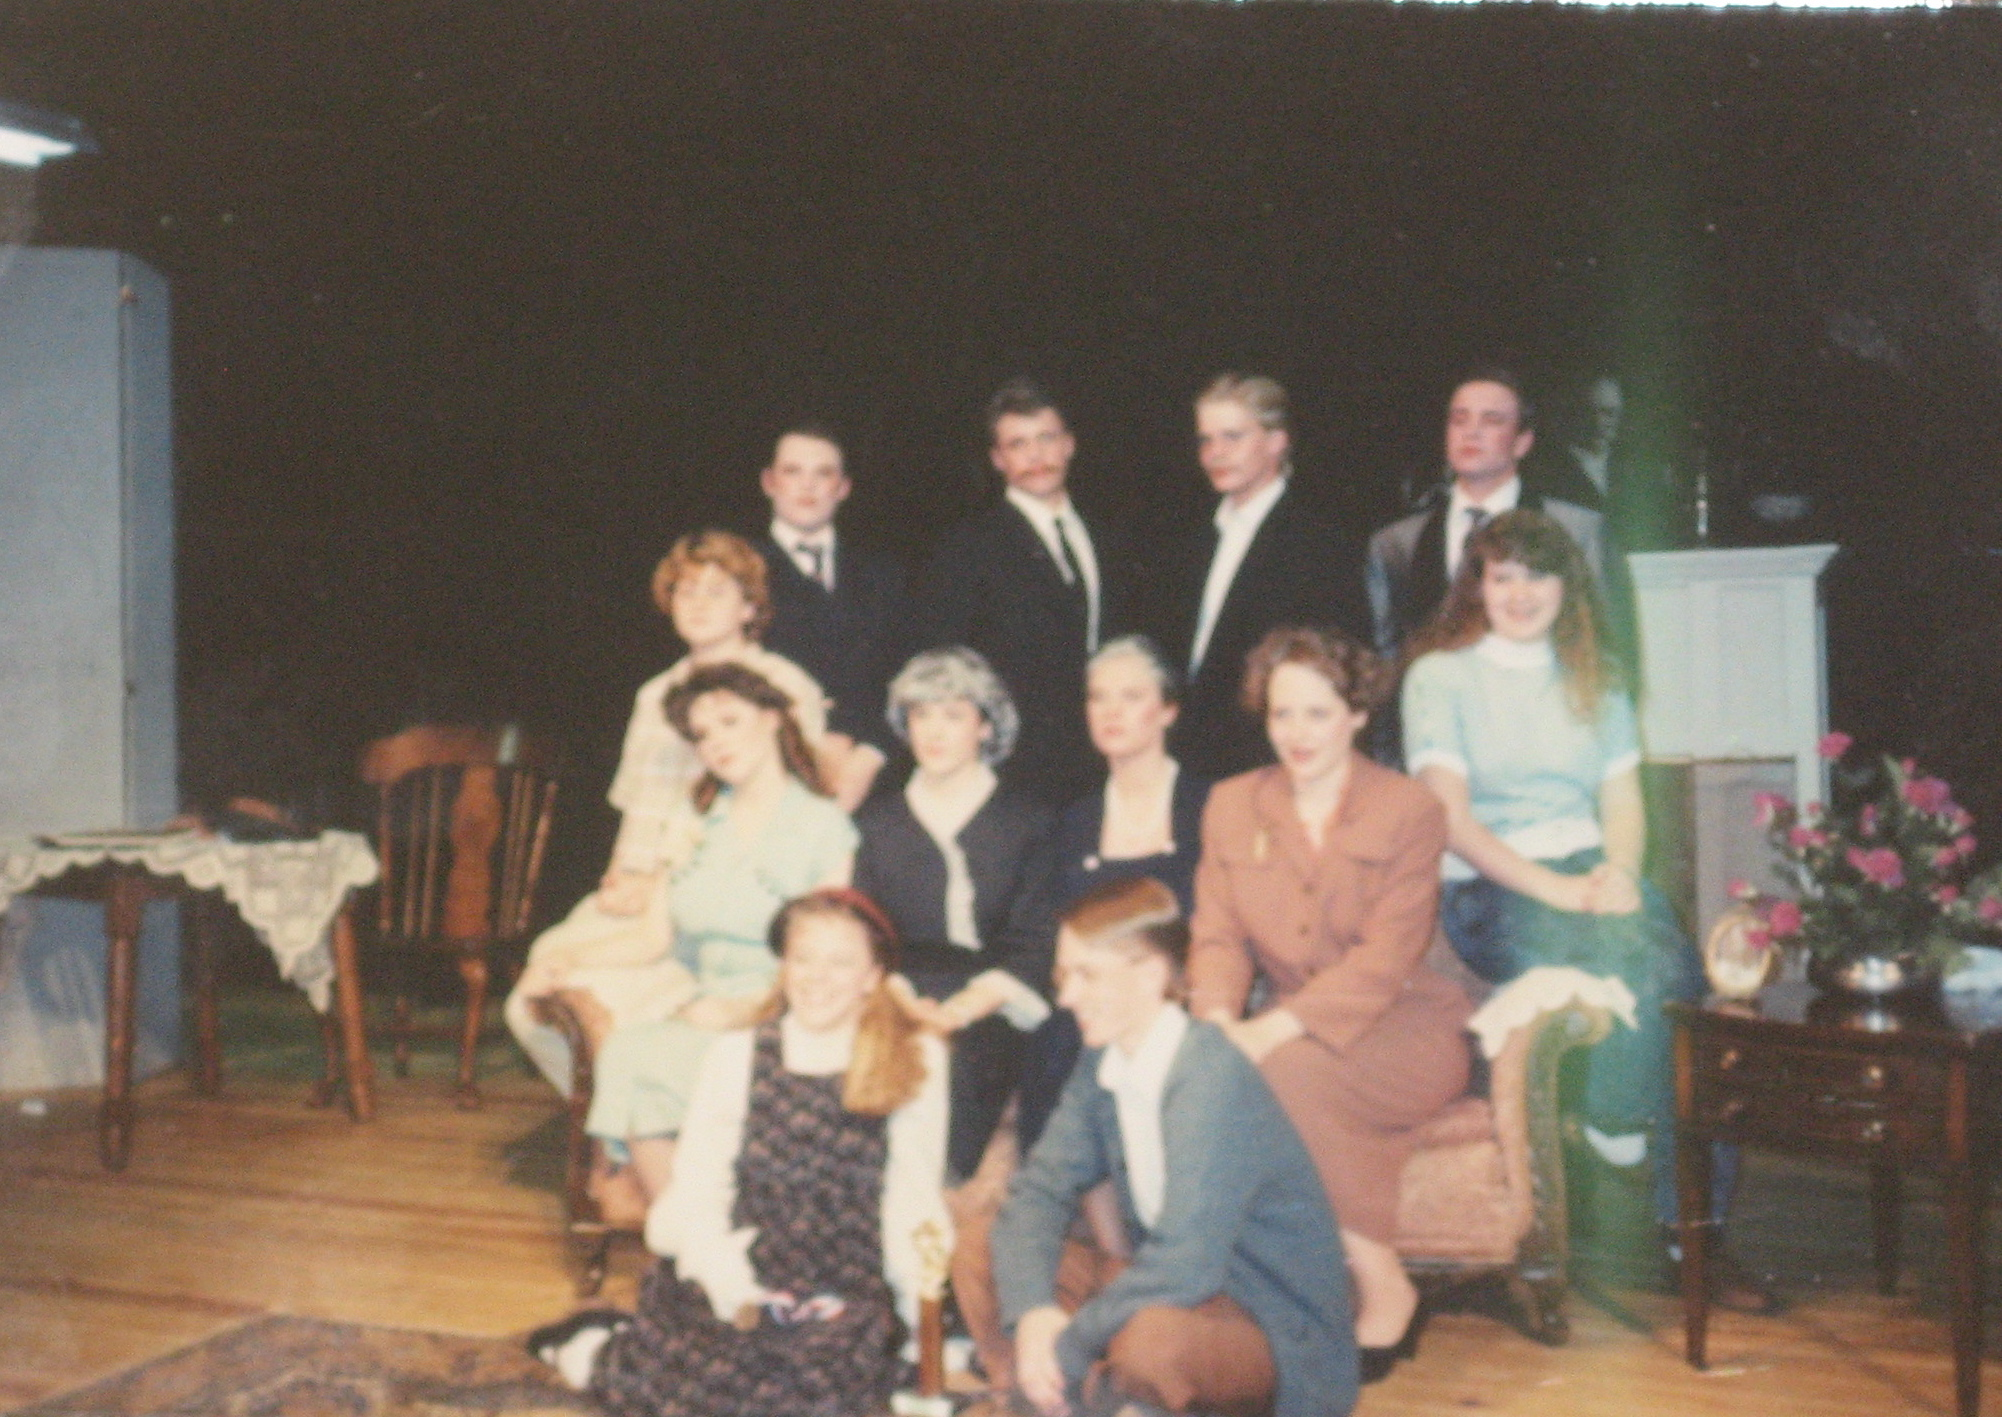 Senior year one-act play... guess which one is me.